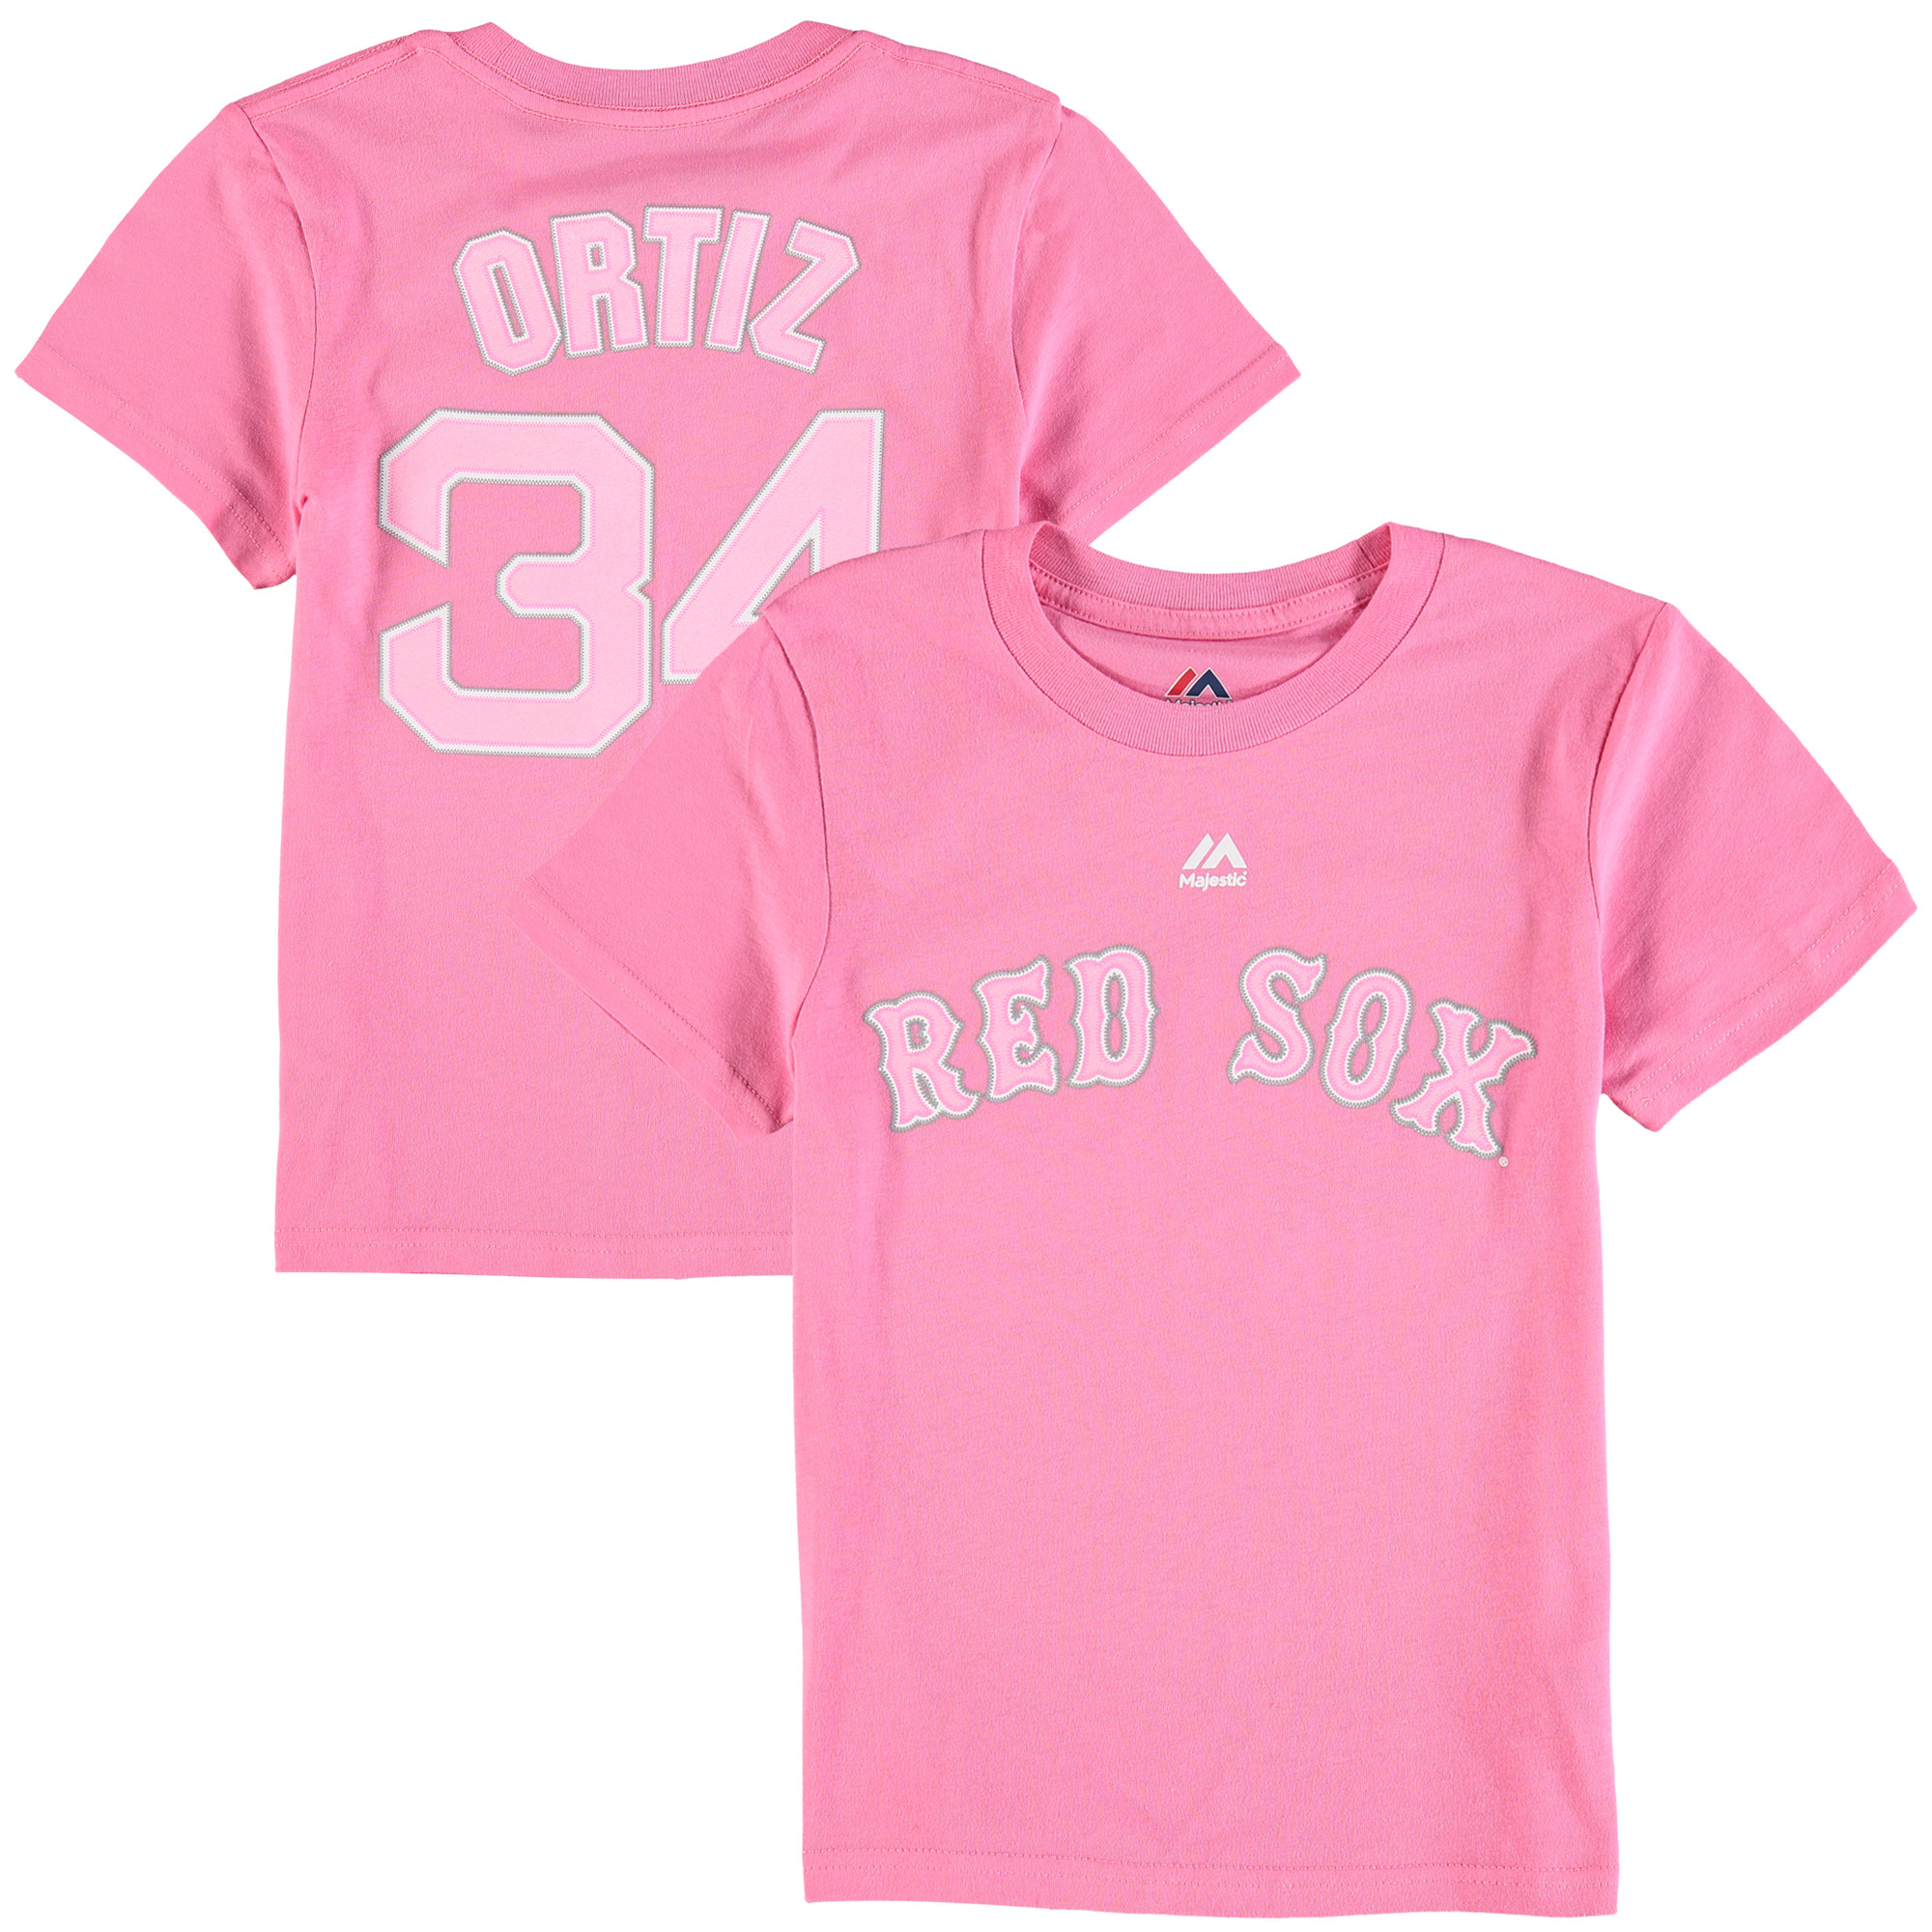 David Ortiz Boston Red Sox Majestic Girls Youth Player Name & Number T-Shirt - Pink